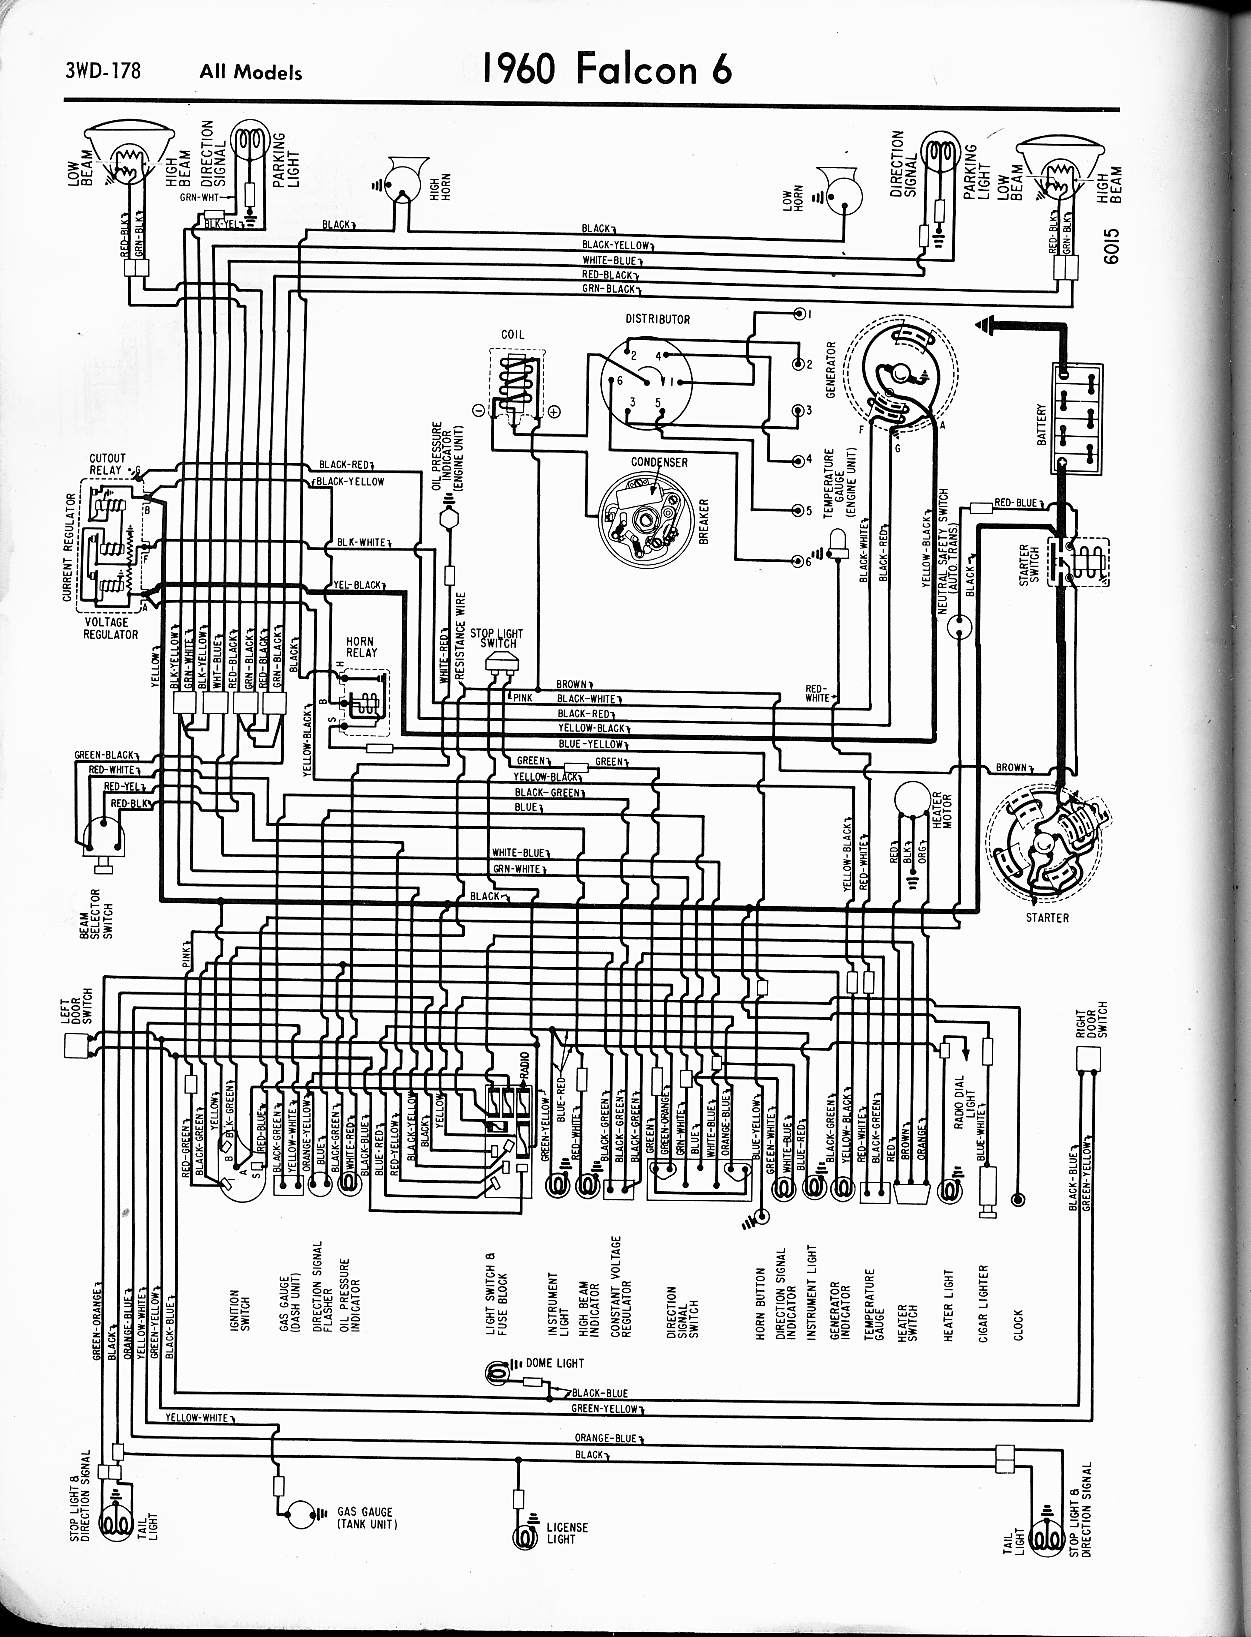 turn signal help needed 60 ranchero - fordsix performance ... 62 ford generator wiring diagram #9